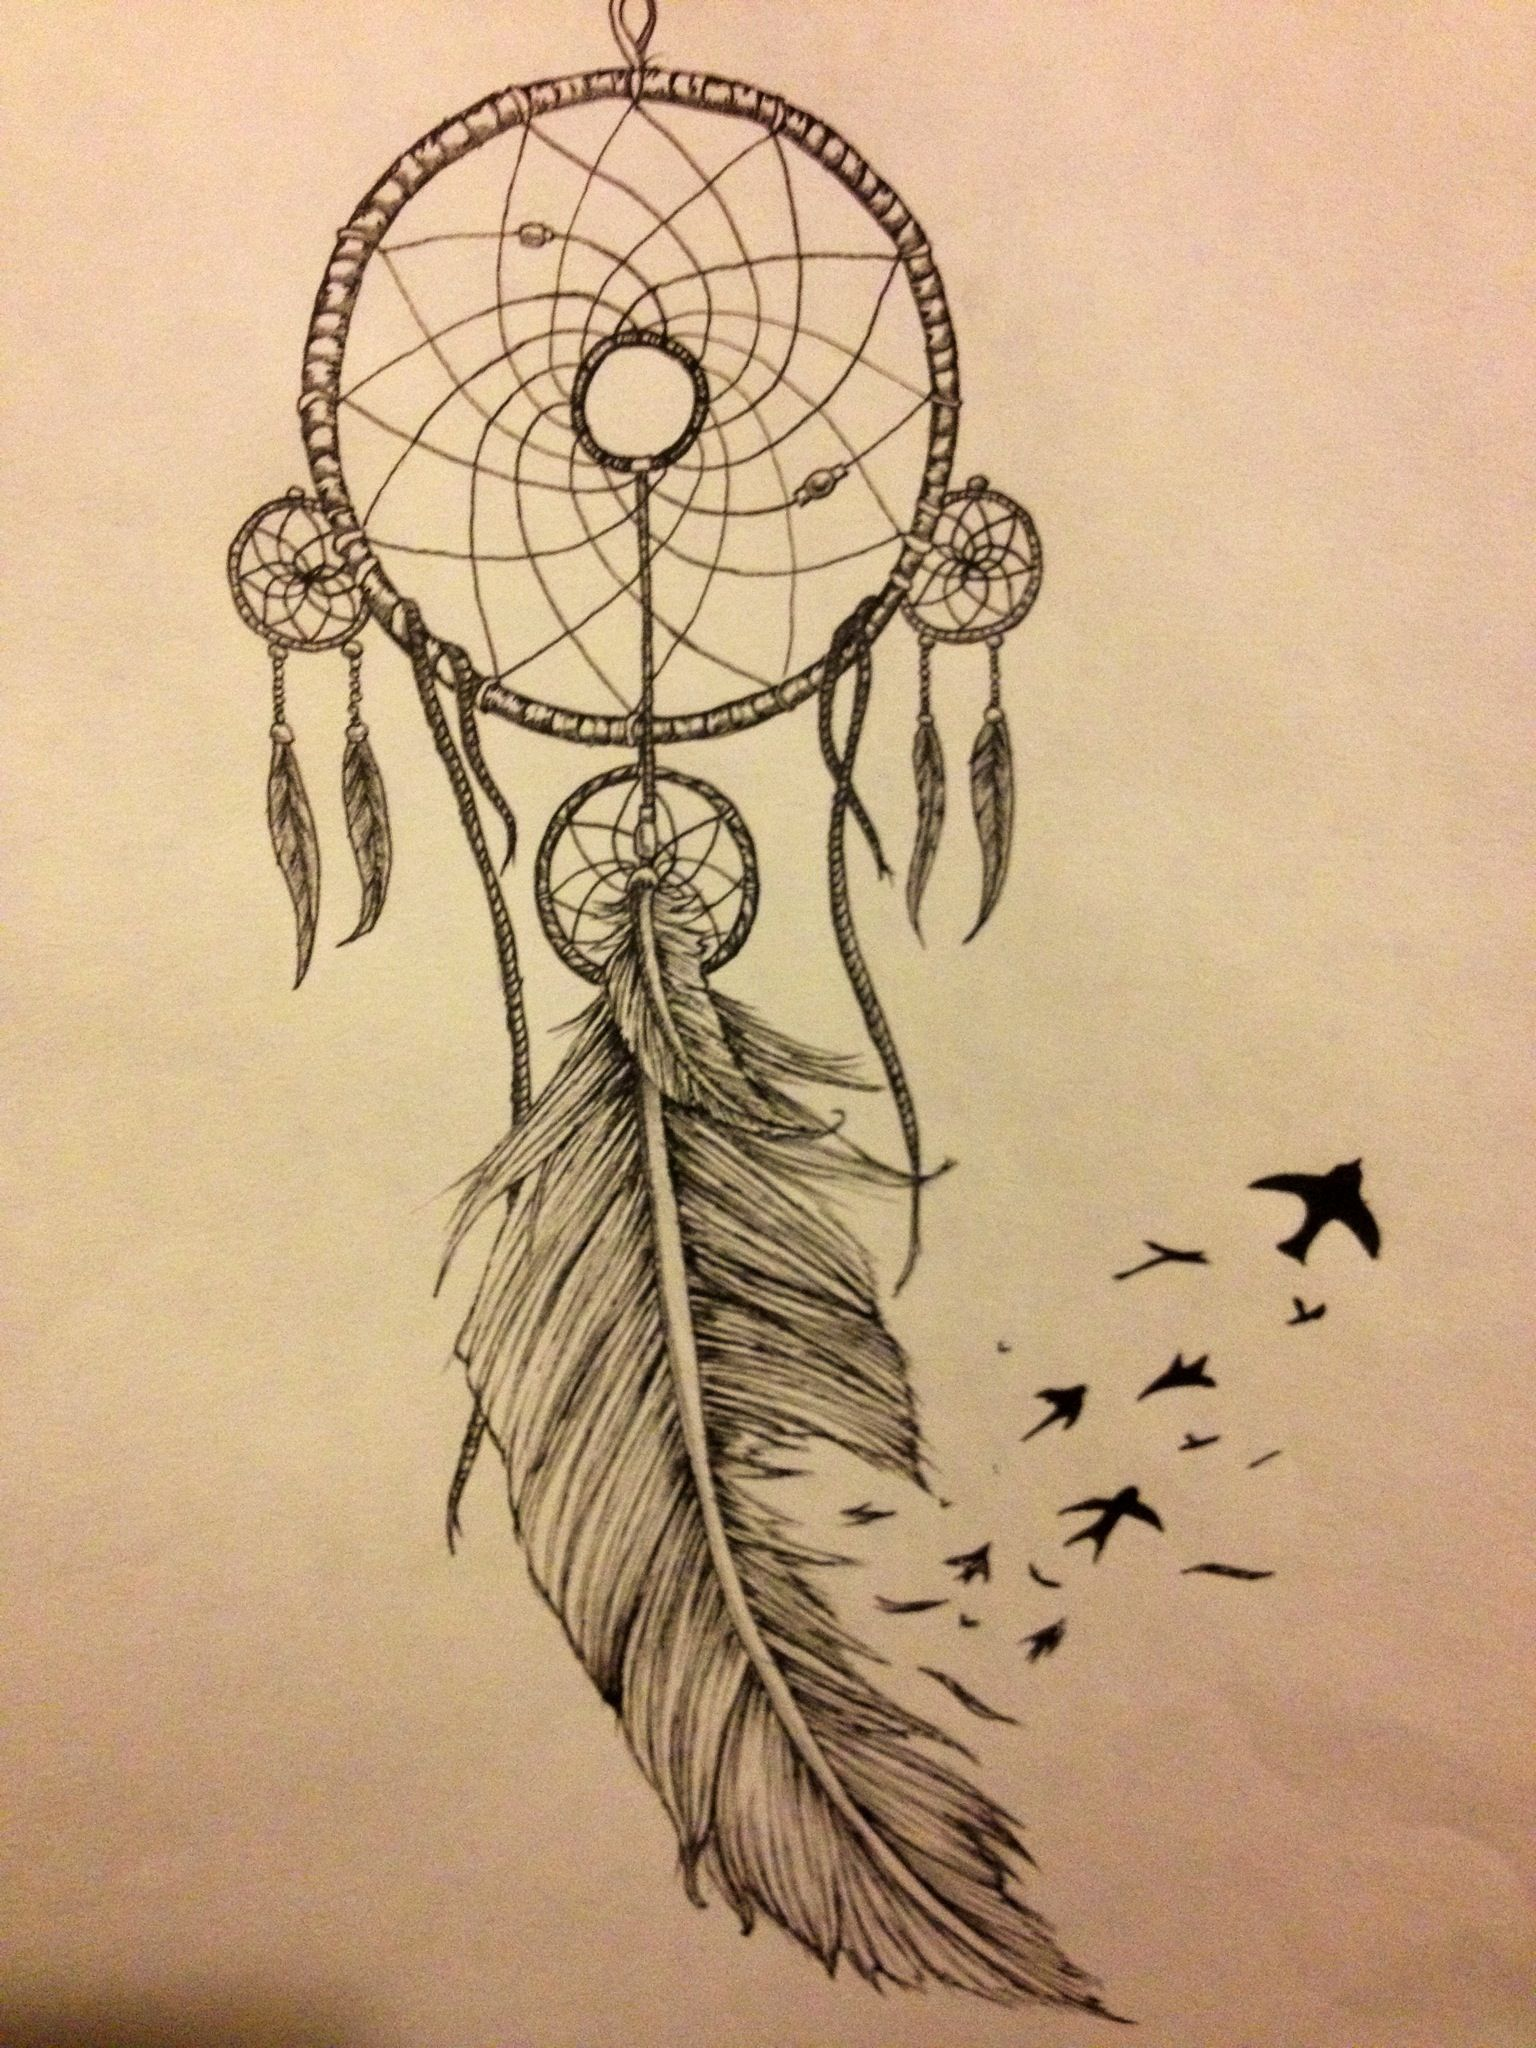 da7a1477f My dream catcher tattoo idea | Tattoos! | Dream catcher tattoo ...